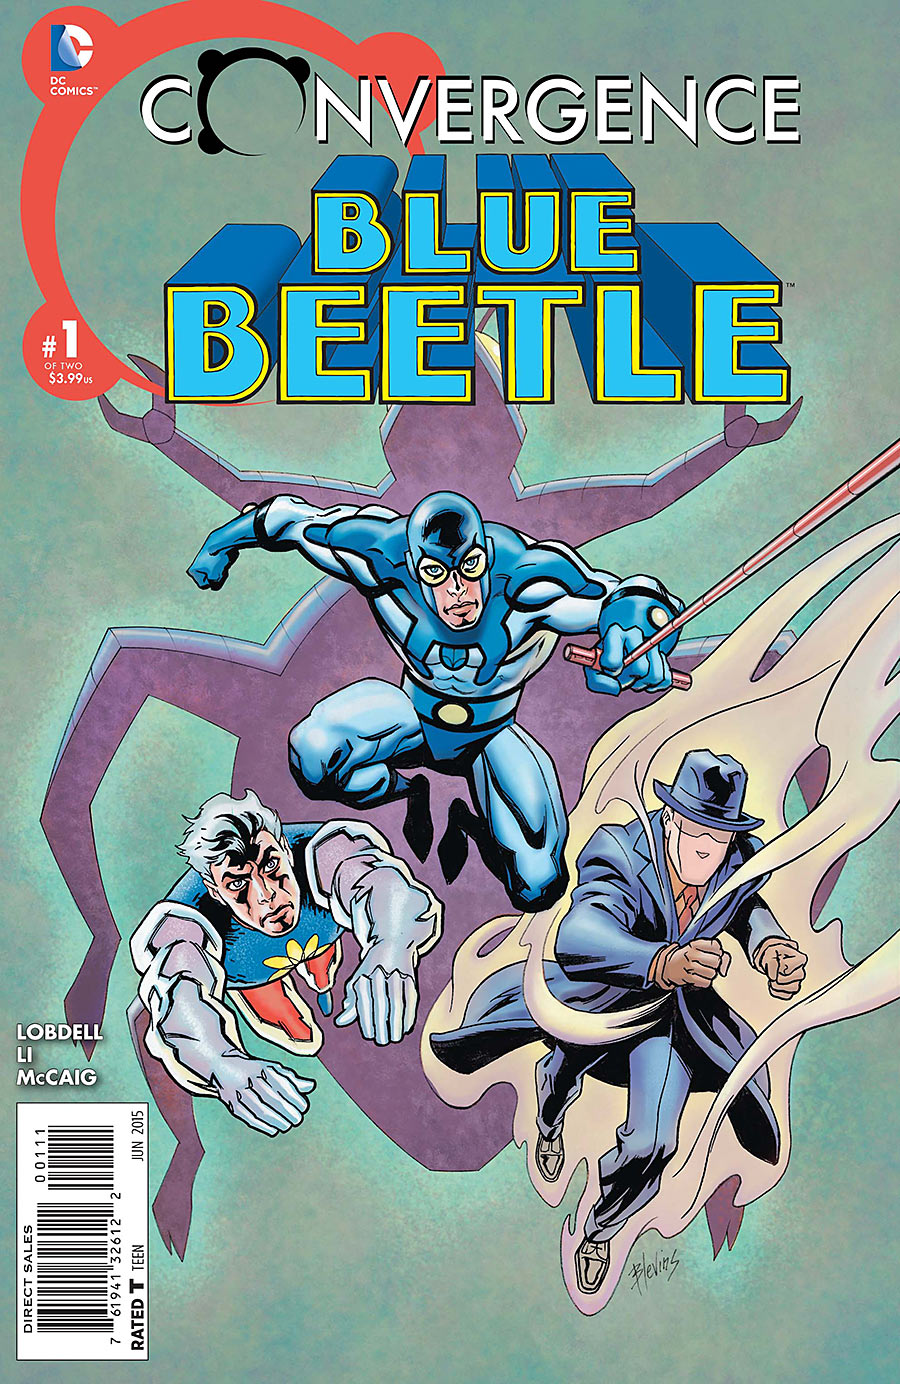 beetle comic convergence dc earth comics question atom captain telos characters injustice comixology most character issue fightersgeneration